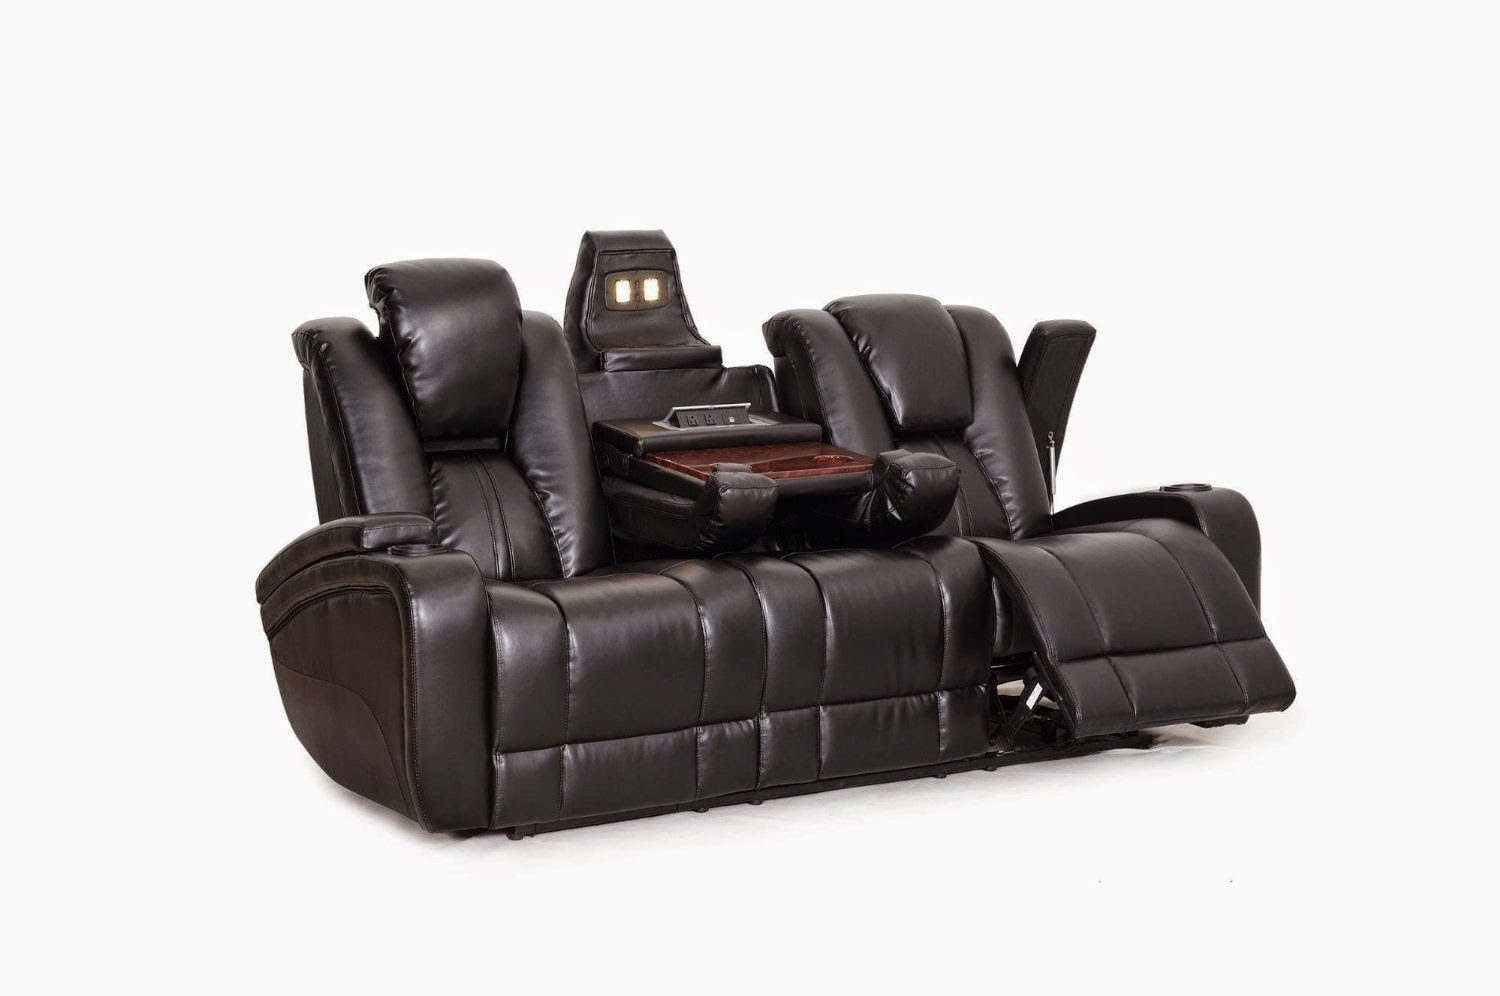 Cheap reclining sofas sale hawkeye double reclining sofa with tray table Reclining loveseat sale